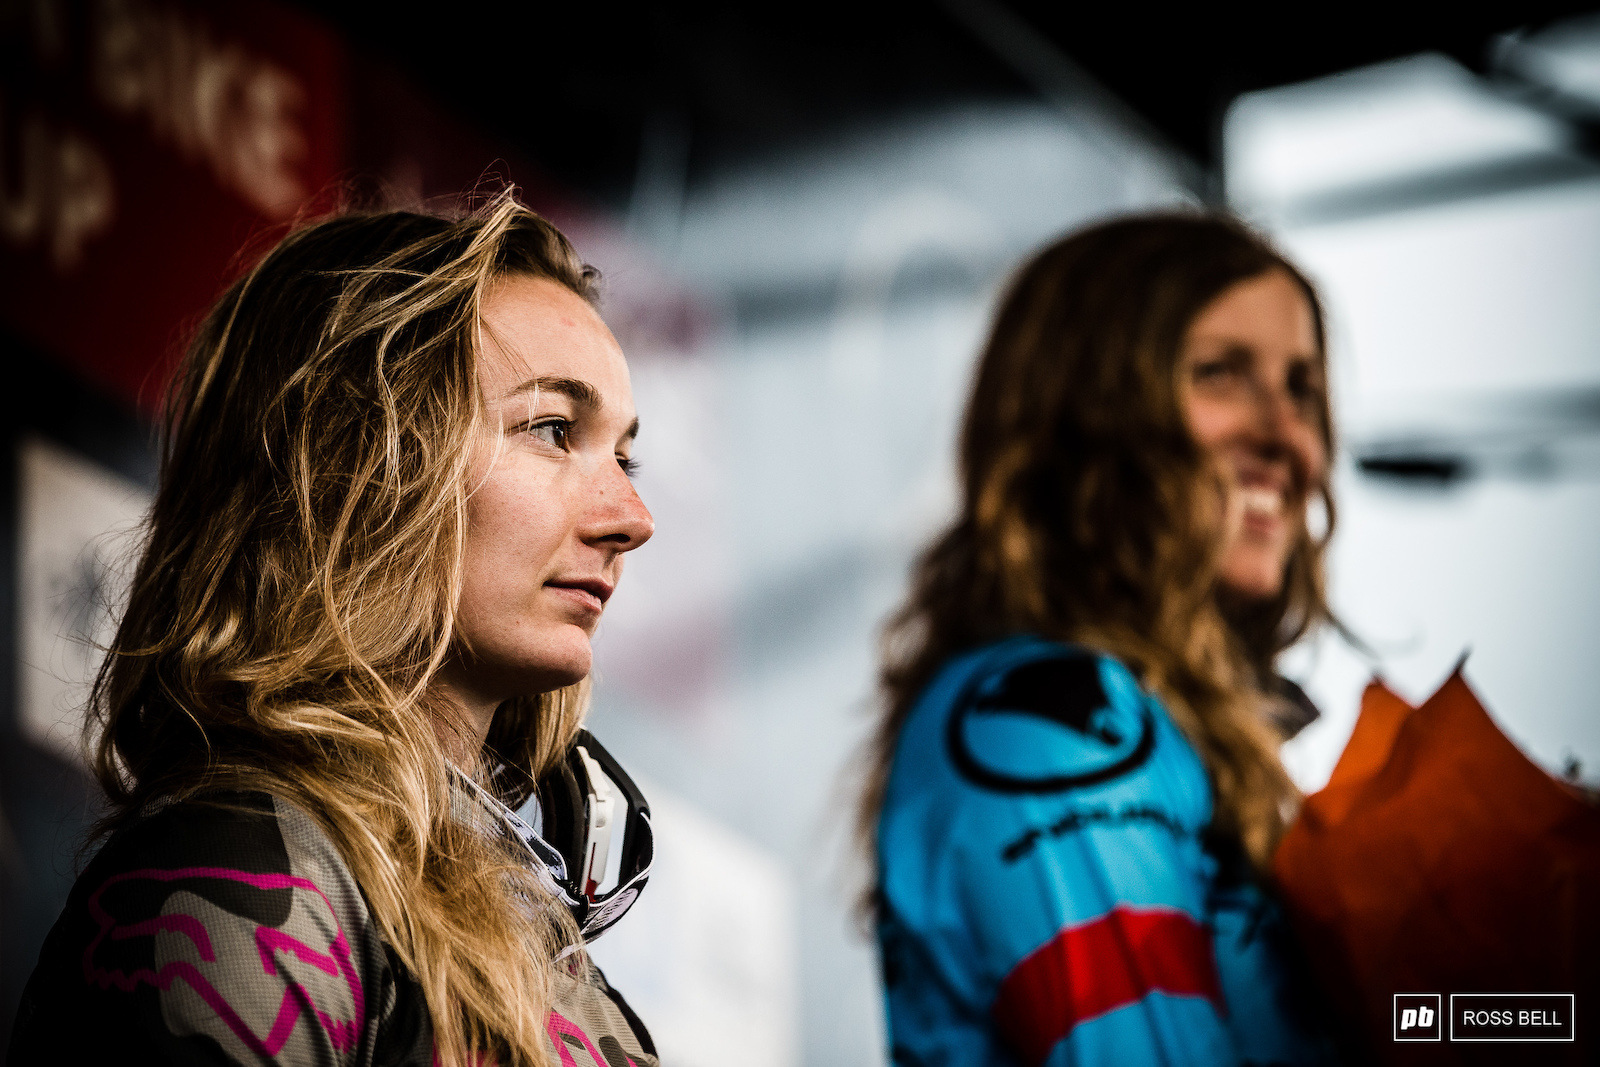 The contrasting emotions that sport brings. Tahnee Seagrave will look to bounce back at World Champs it was Rachel Atherton s day as she racked up her 37th win and took her 6th overall title in the process.